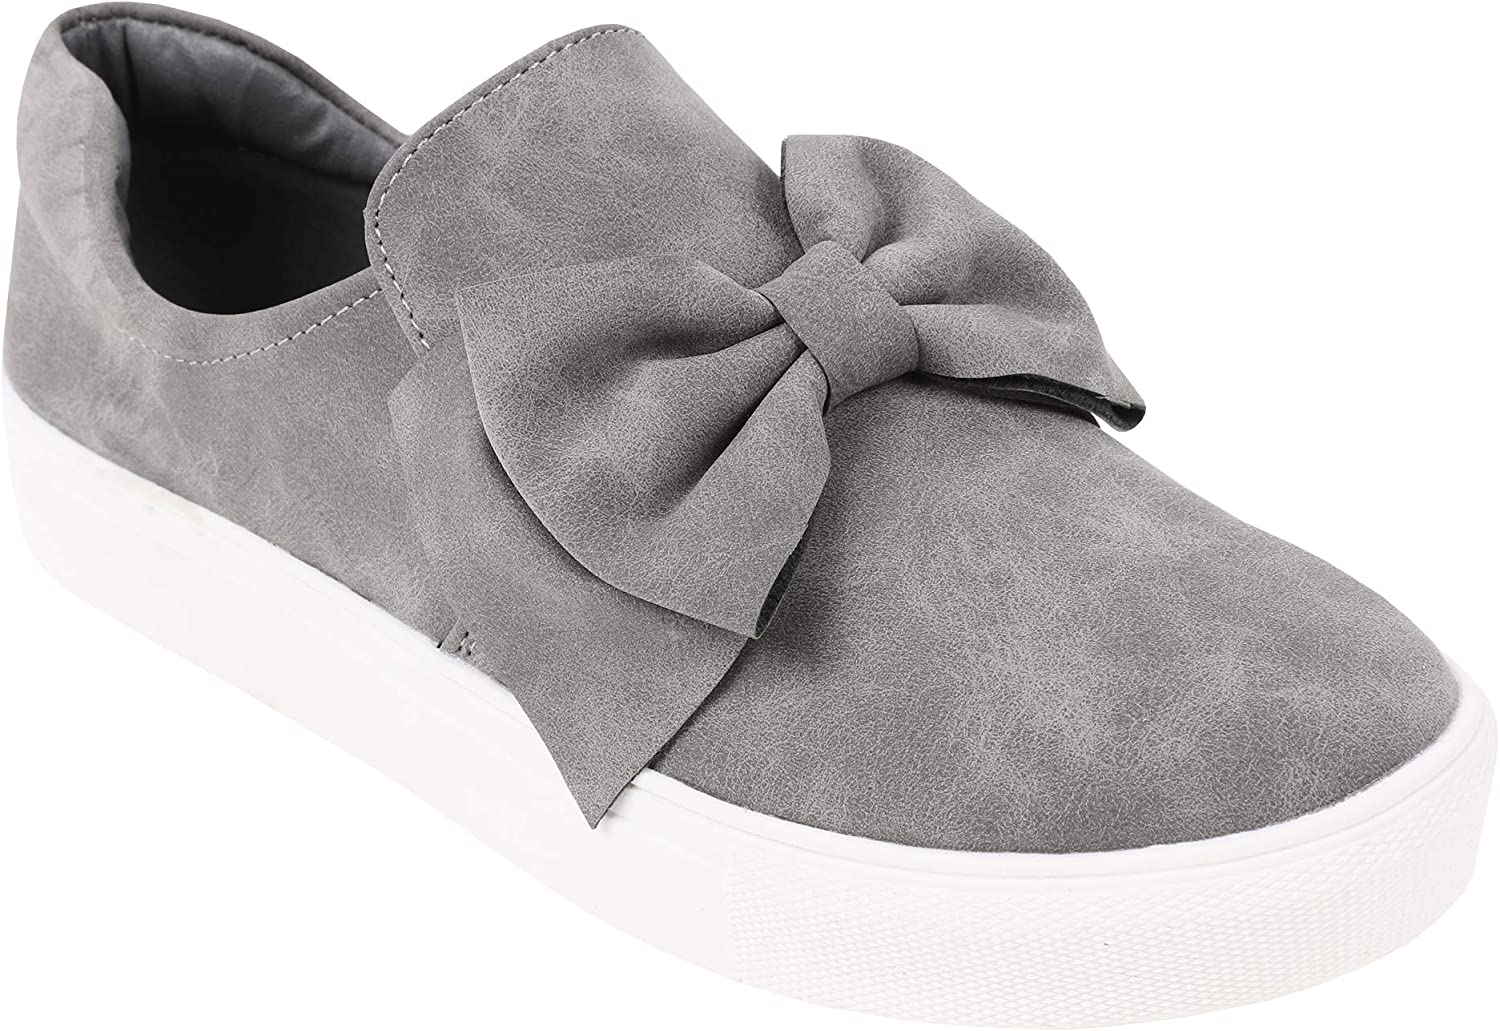 Bow Tie Knot Comfort Flats Shoes